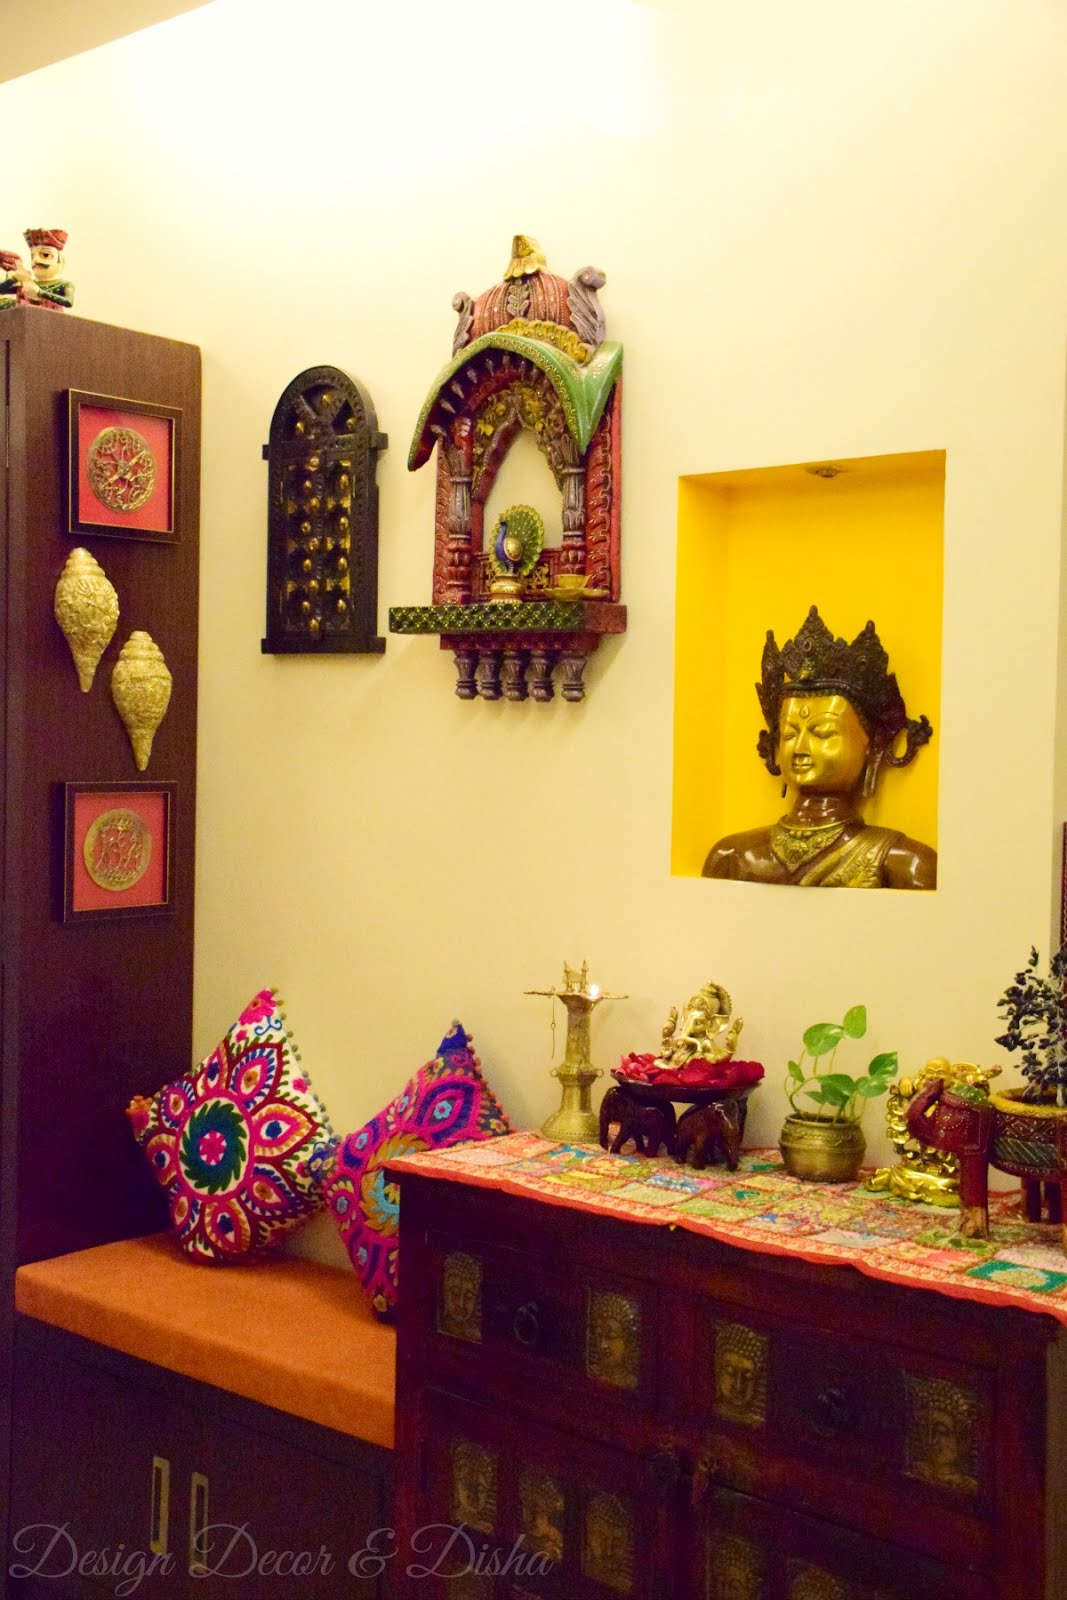 Design Decor & Disha | An Indian Design & Decor Blog: Wall Stories ...